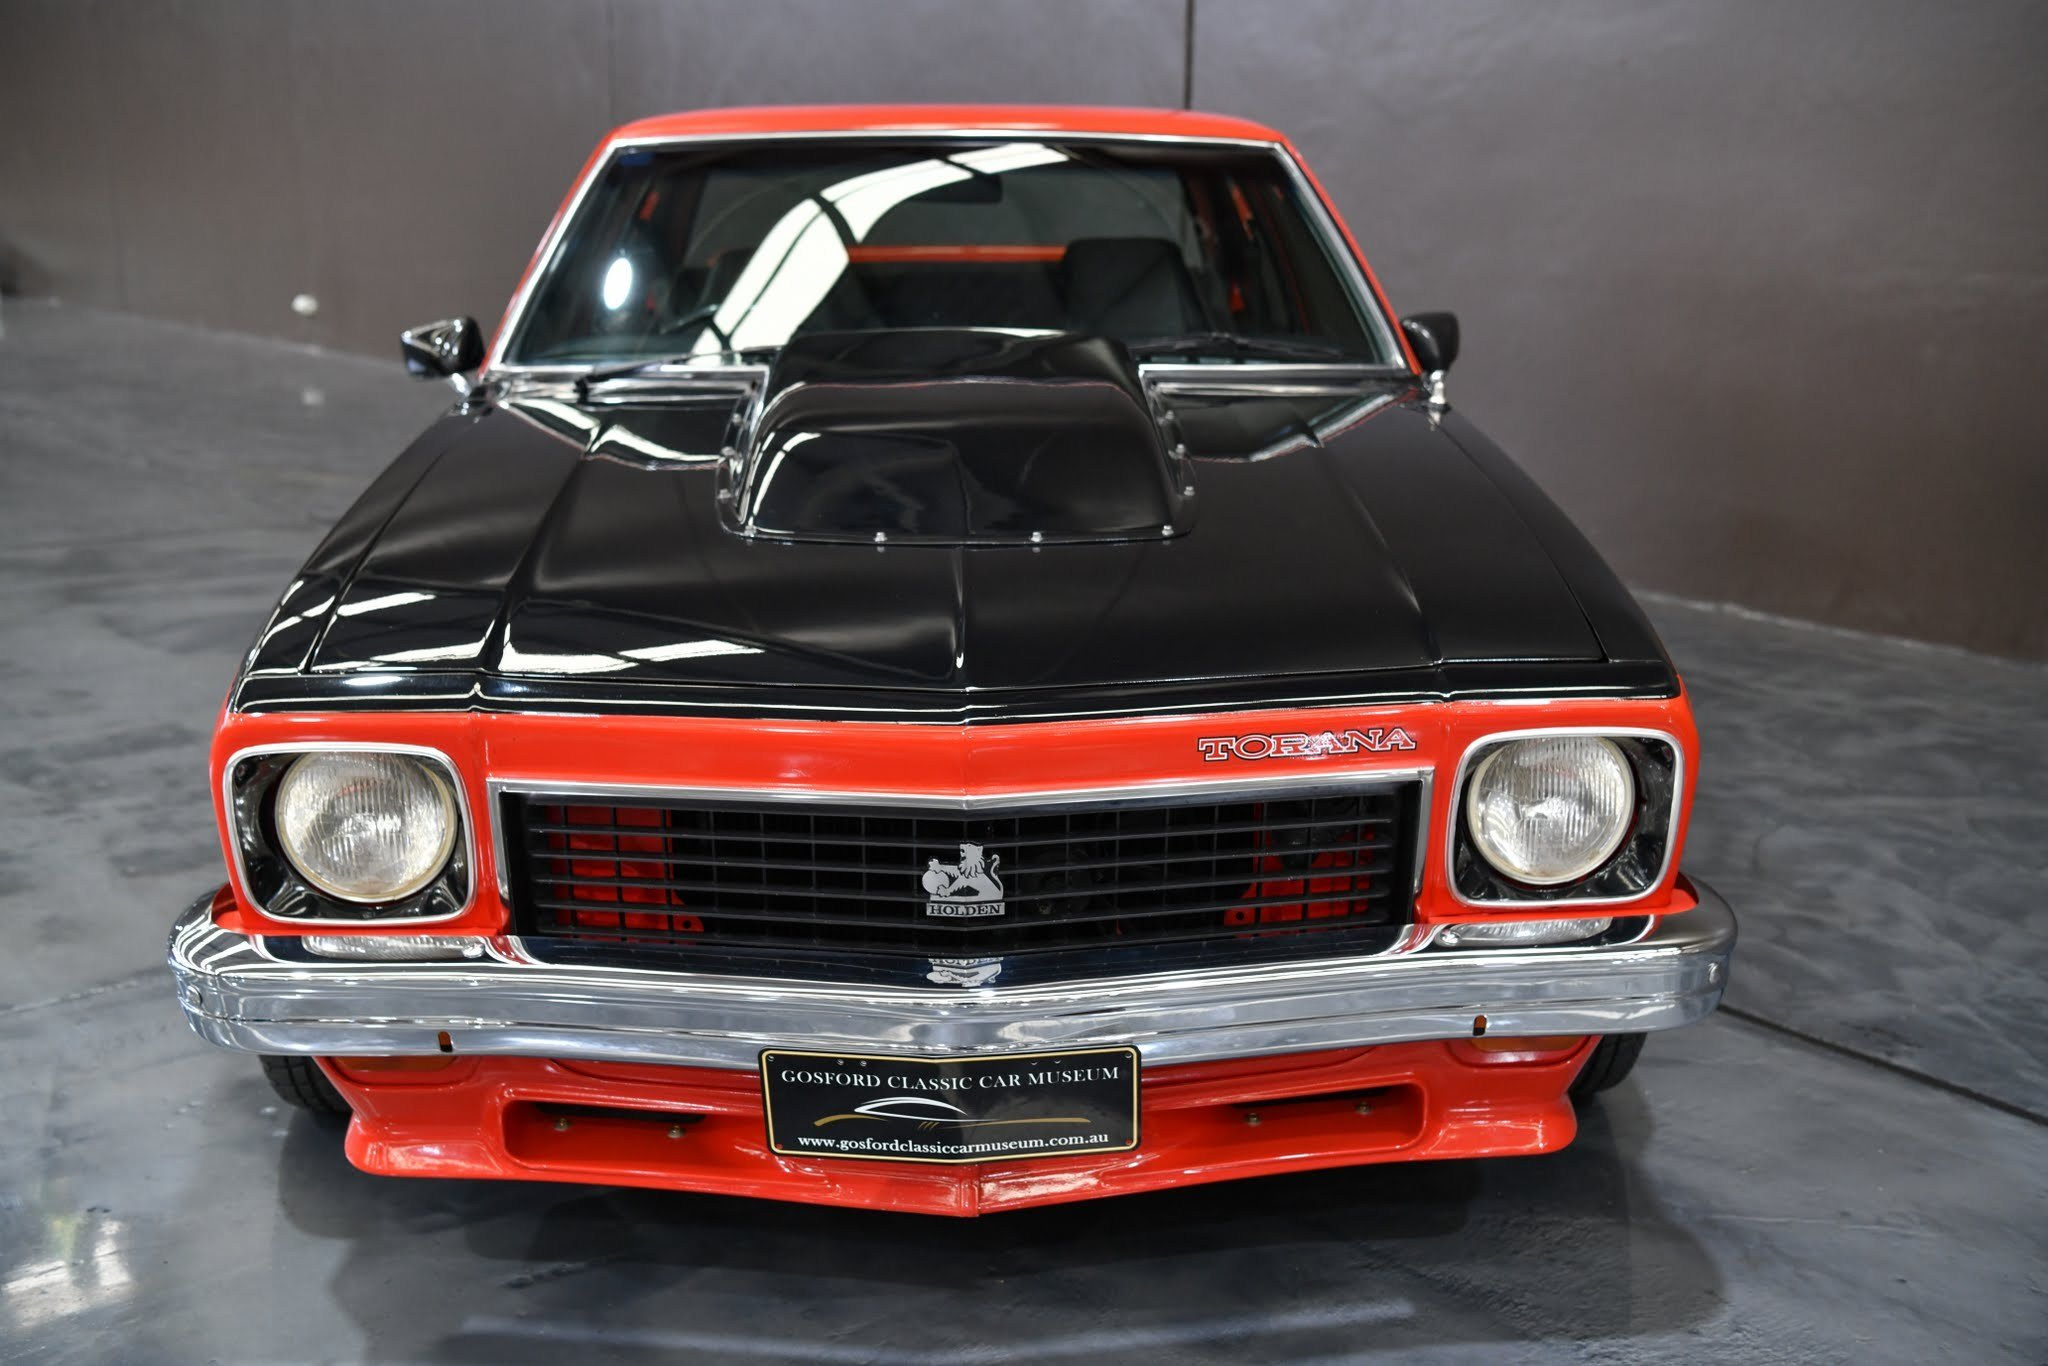 New 1977 Holden Torana A9X Gosford Classic Car Auction By On This Month